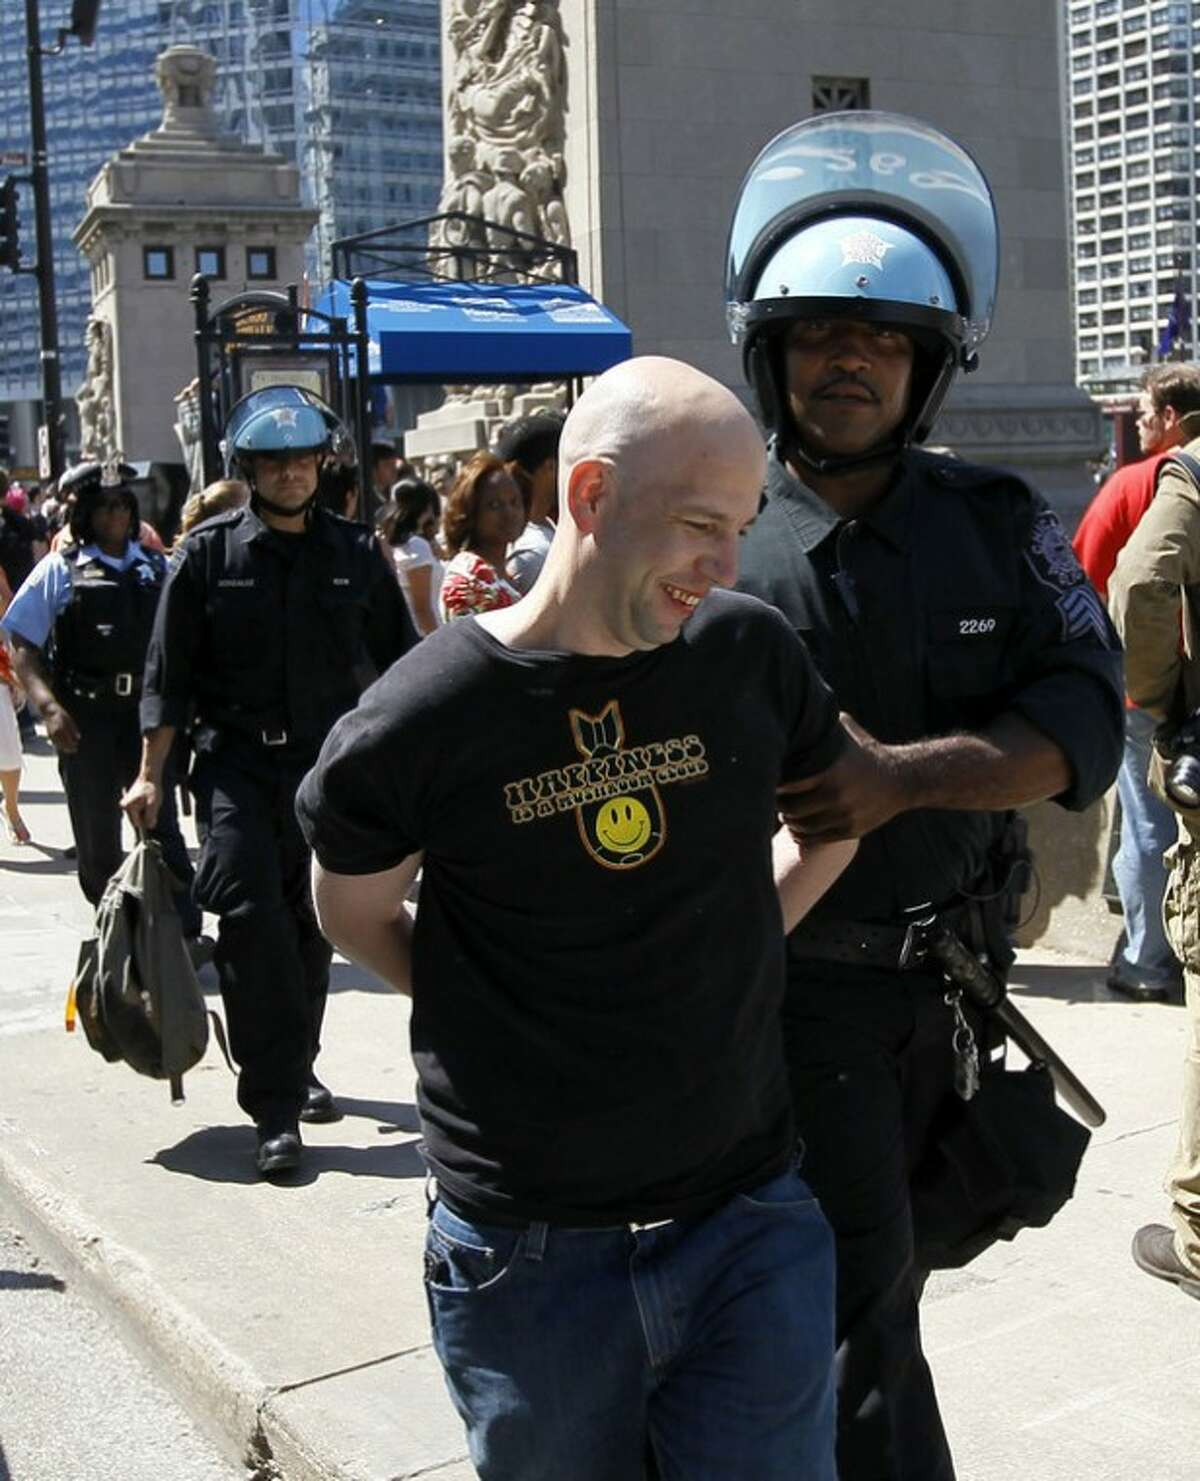 Steve Salsman, 38, from Galesburg, Ill., is taken into custody by a Chicago Police officer during a demonstration Friday, May 18 2012, in Chicago. Thousands of nurses and other protesters gathered for the noisy but largely peaceful demonstration with a broad spectrum of causes, from anti-war activists to Occupy protesters to a Chicago Women's AIDS project. The demonstrations Friday were the largest yet ahead of a two-day NATO summit that is expected to draw even larger protests. (AP Photo/Charles Rex Arbogast)